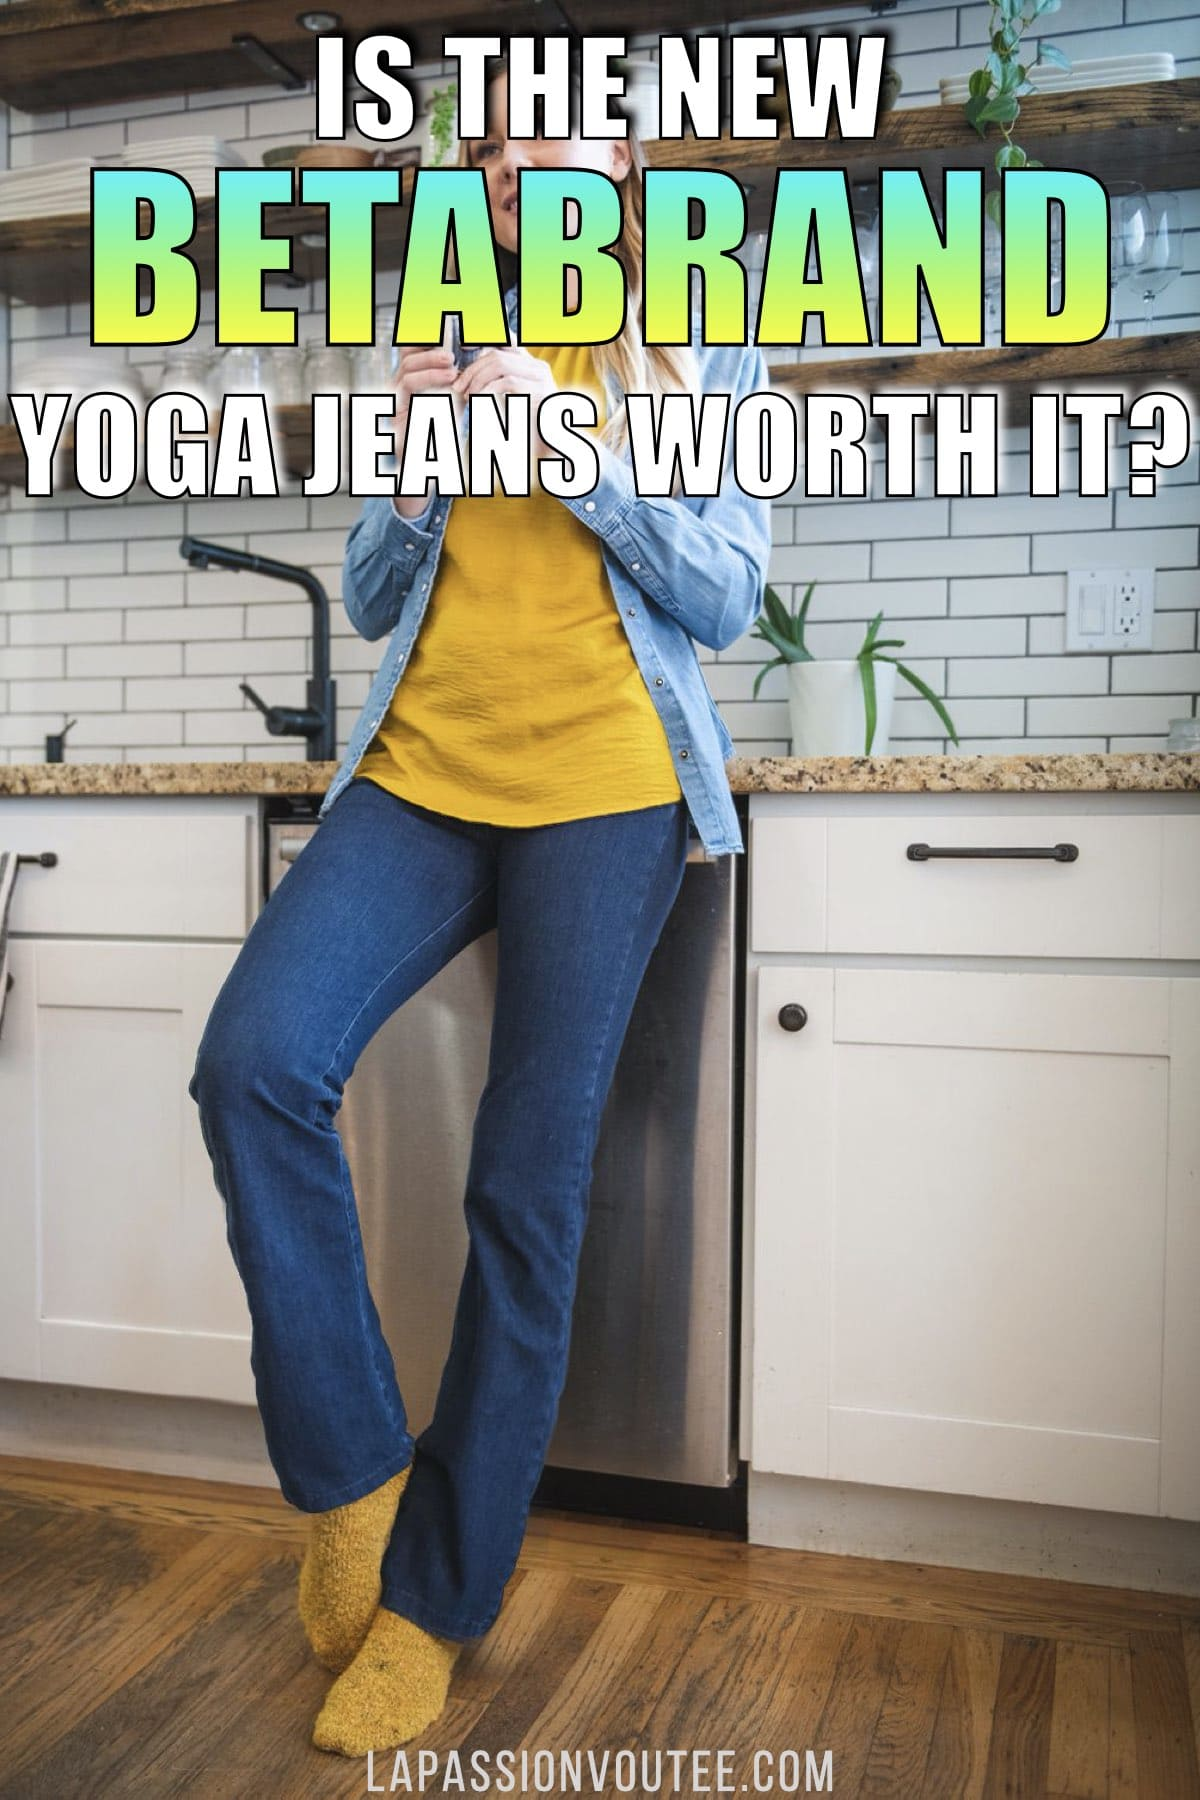 Is Betabrand Yoga Jeans Worth It